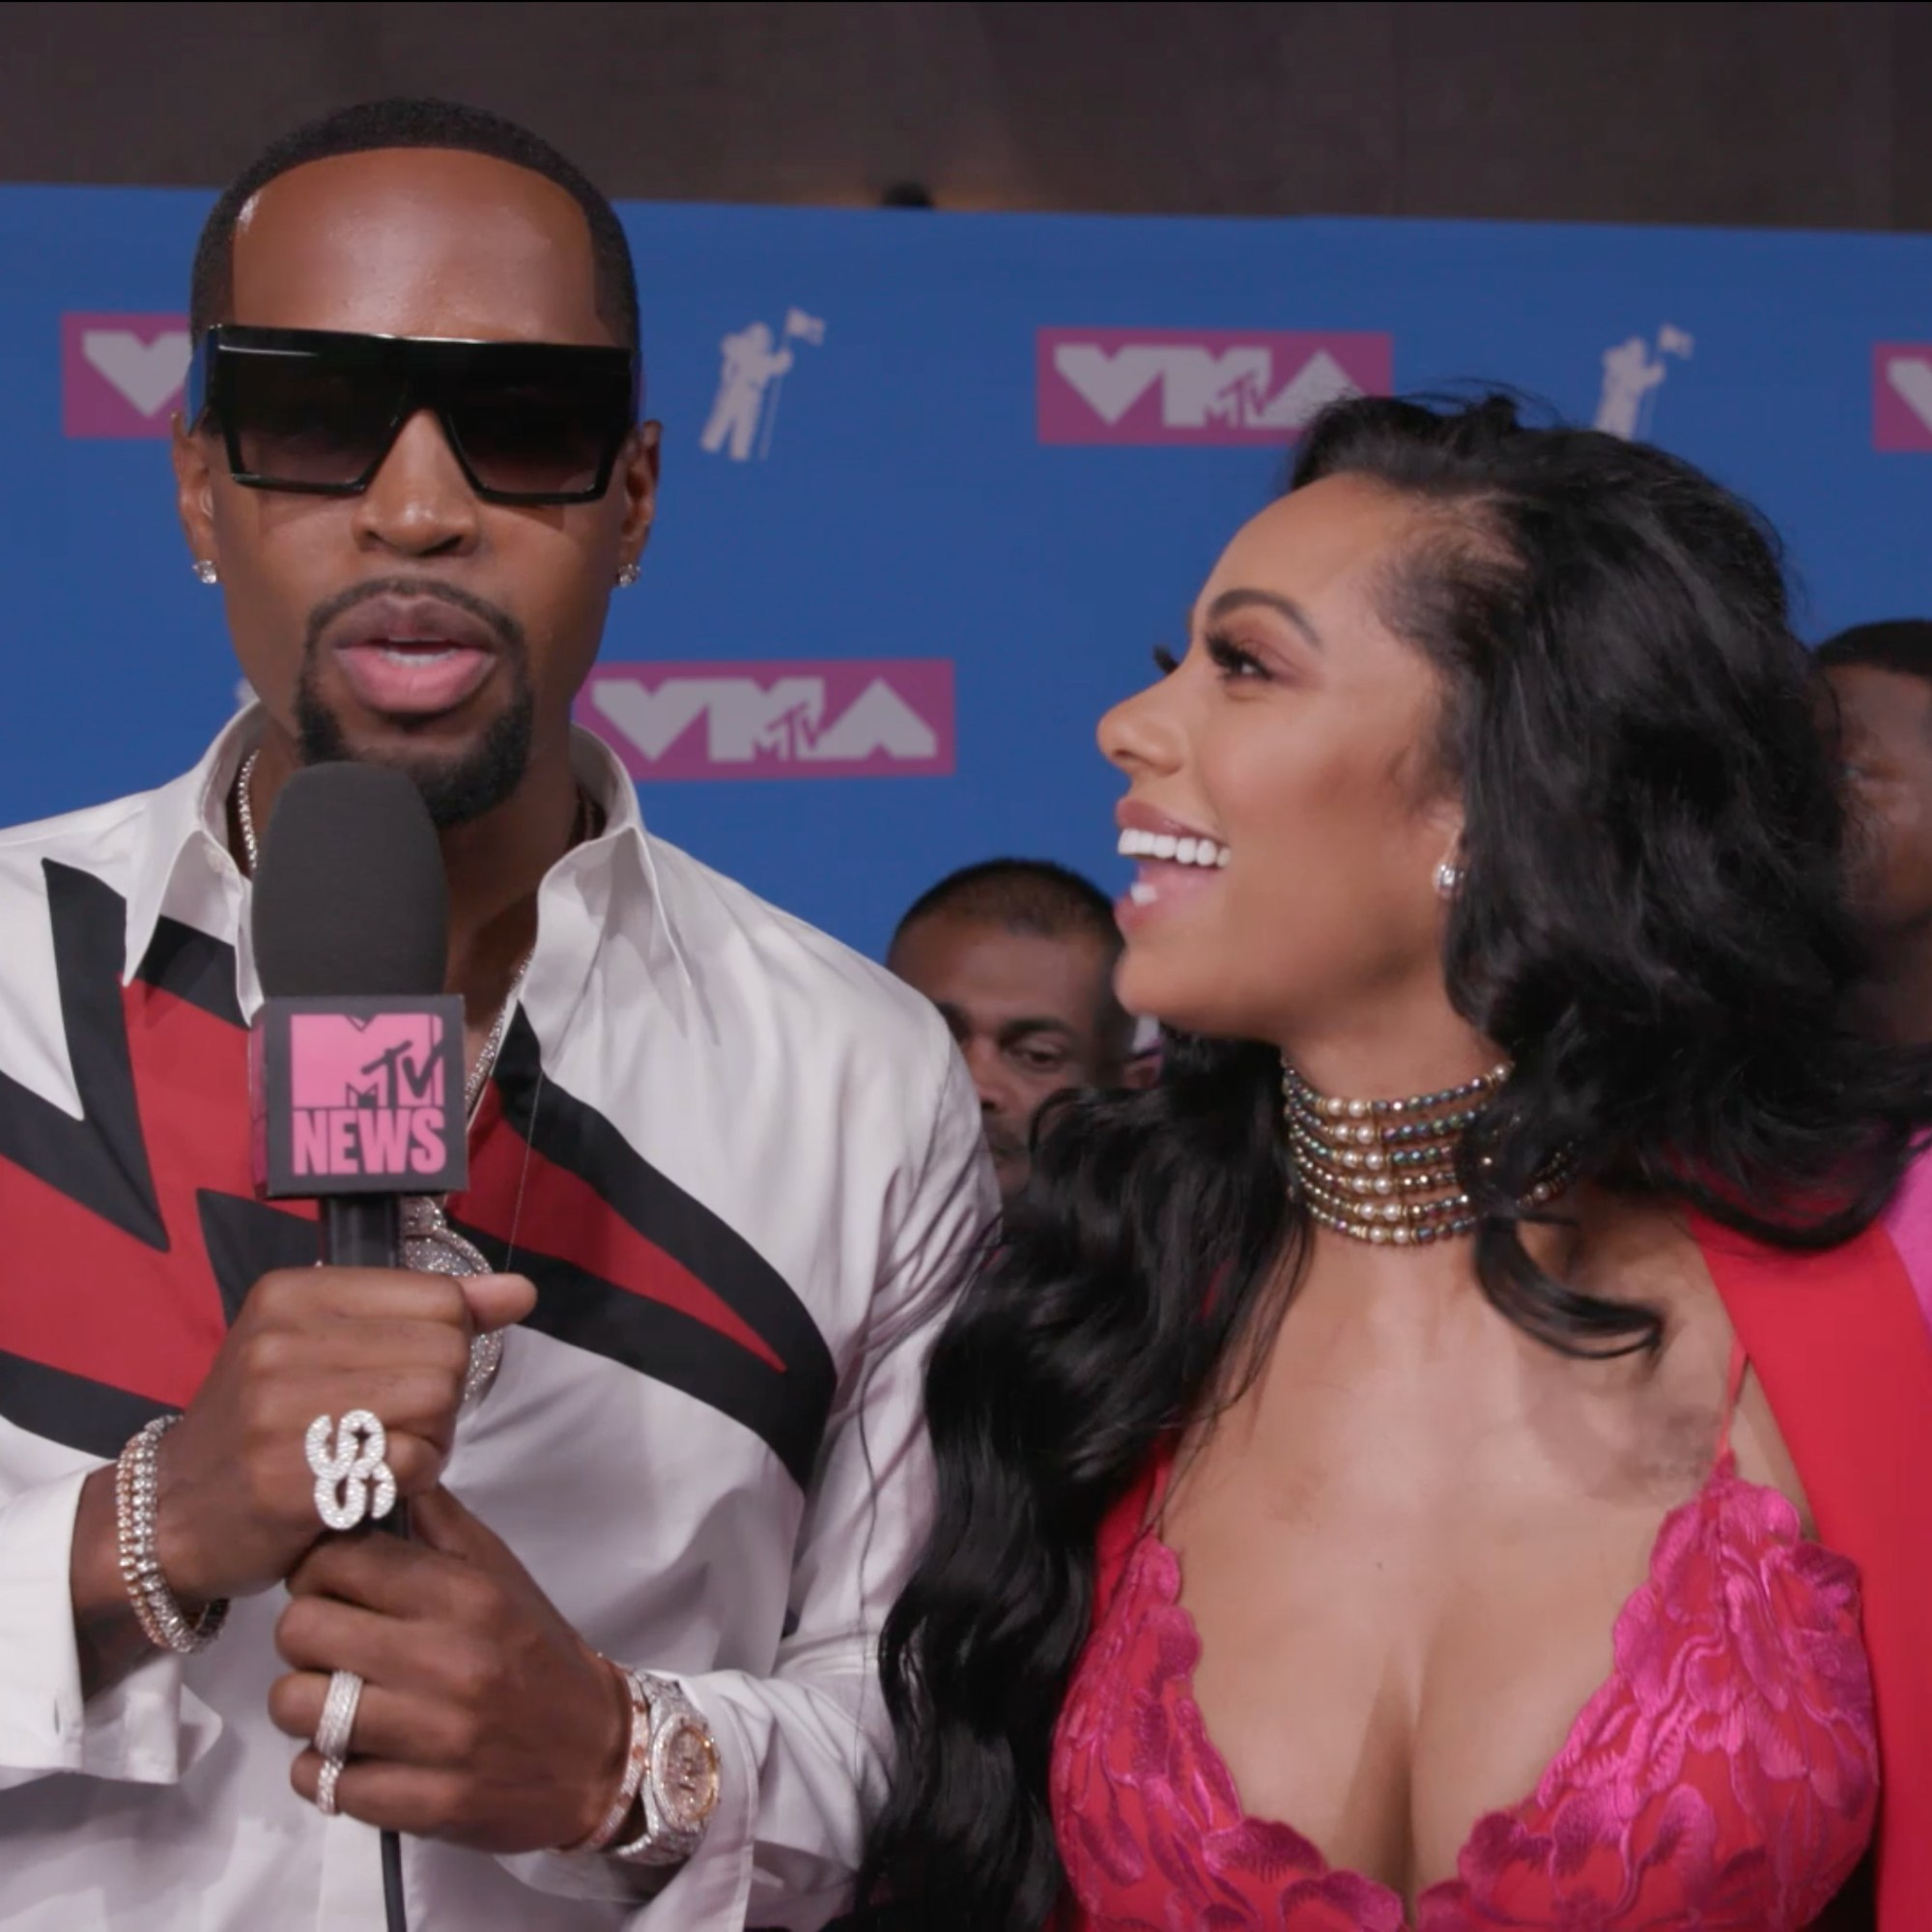 Erica Mena Posts An Emotional Message For Safaree's Birthday And He Responds - Here Are The Public Romantic Words These Two Exchanged Just After The Cheating Rumors